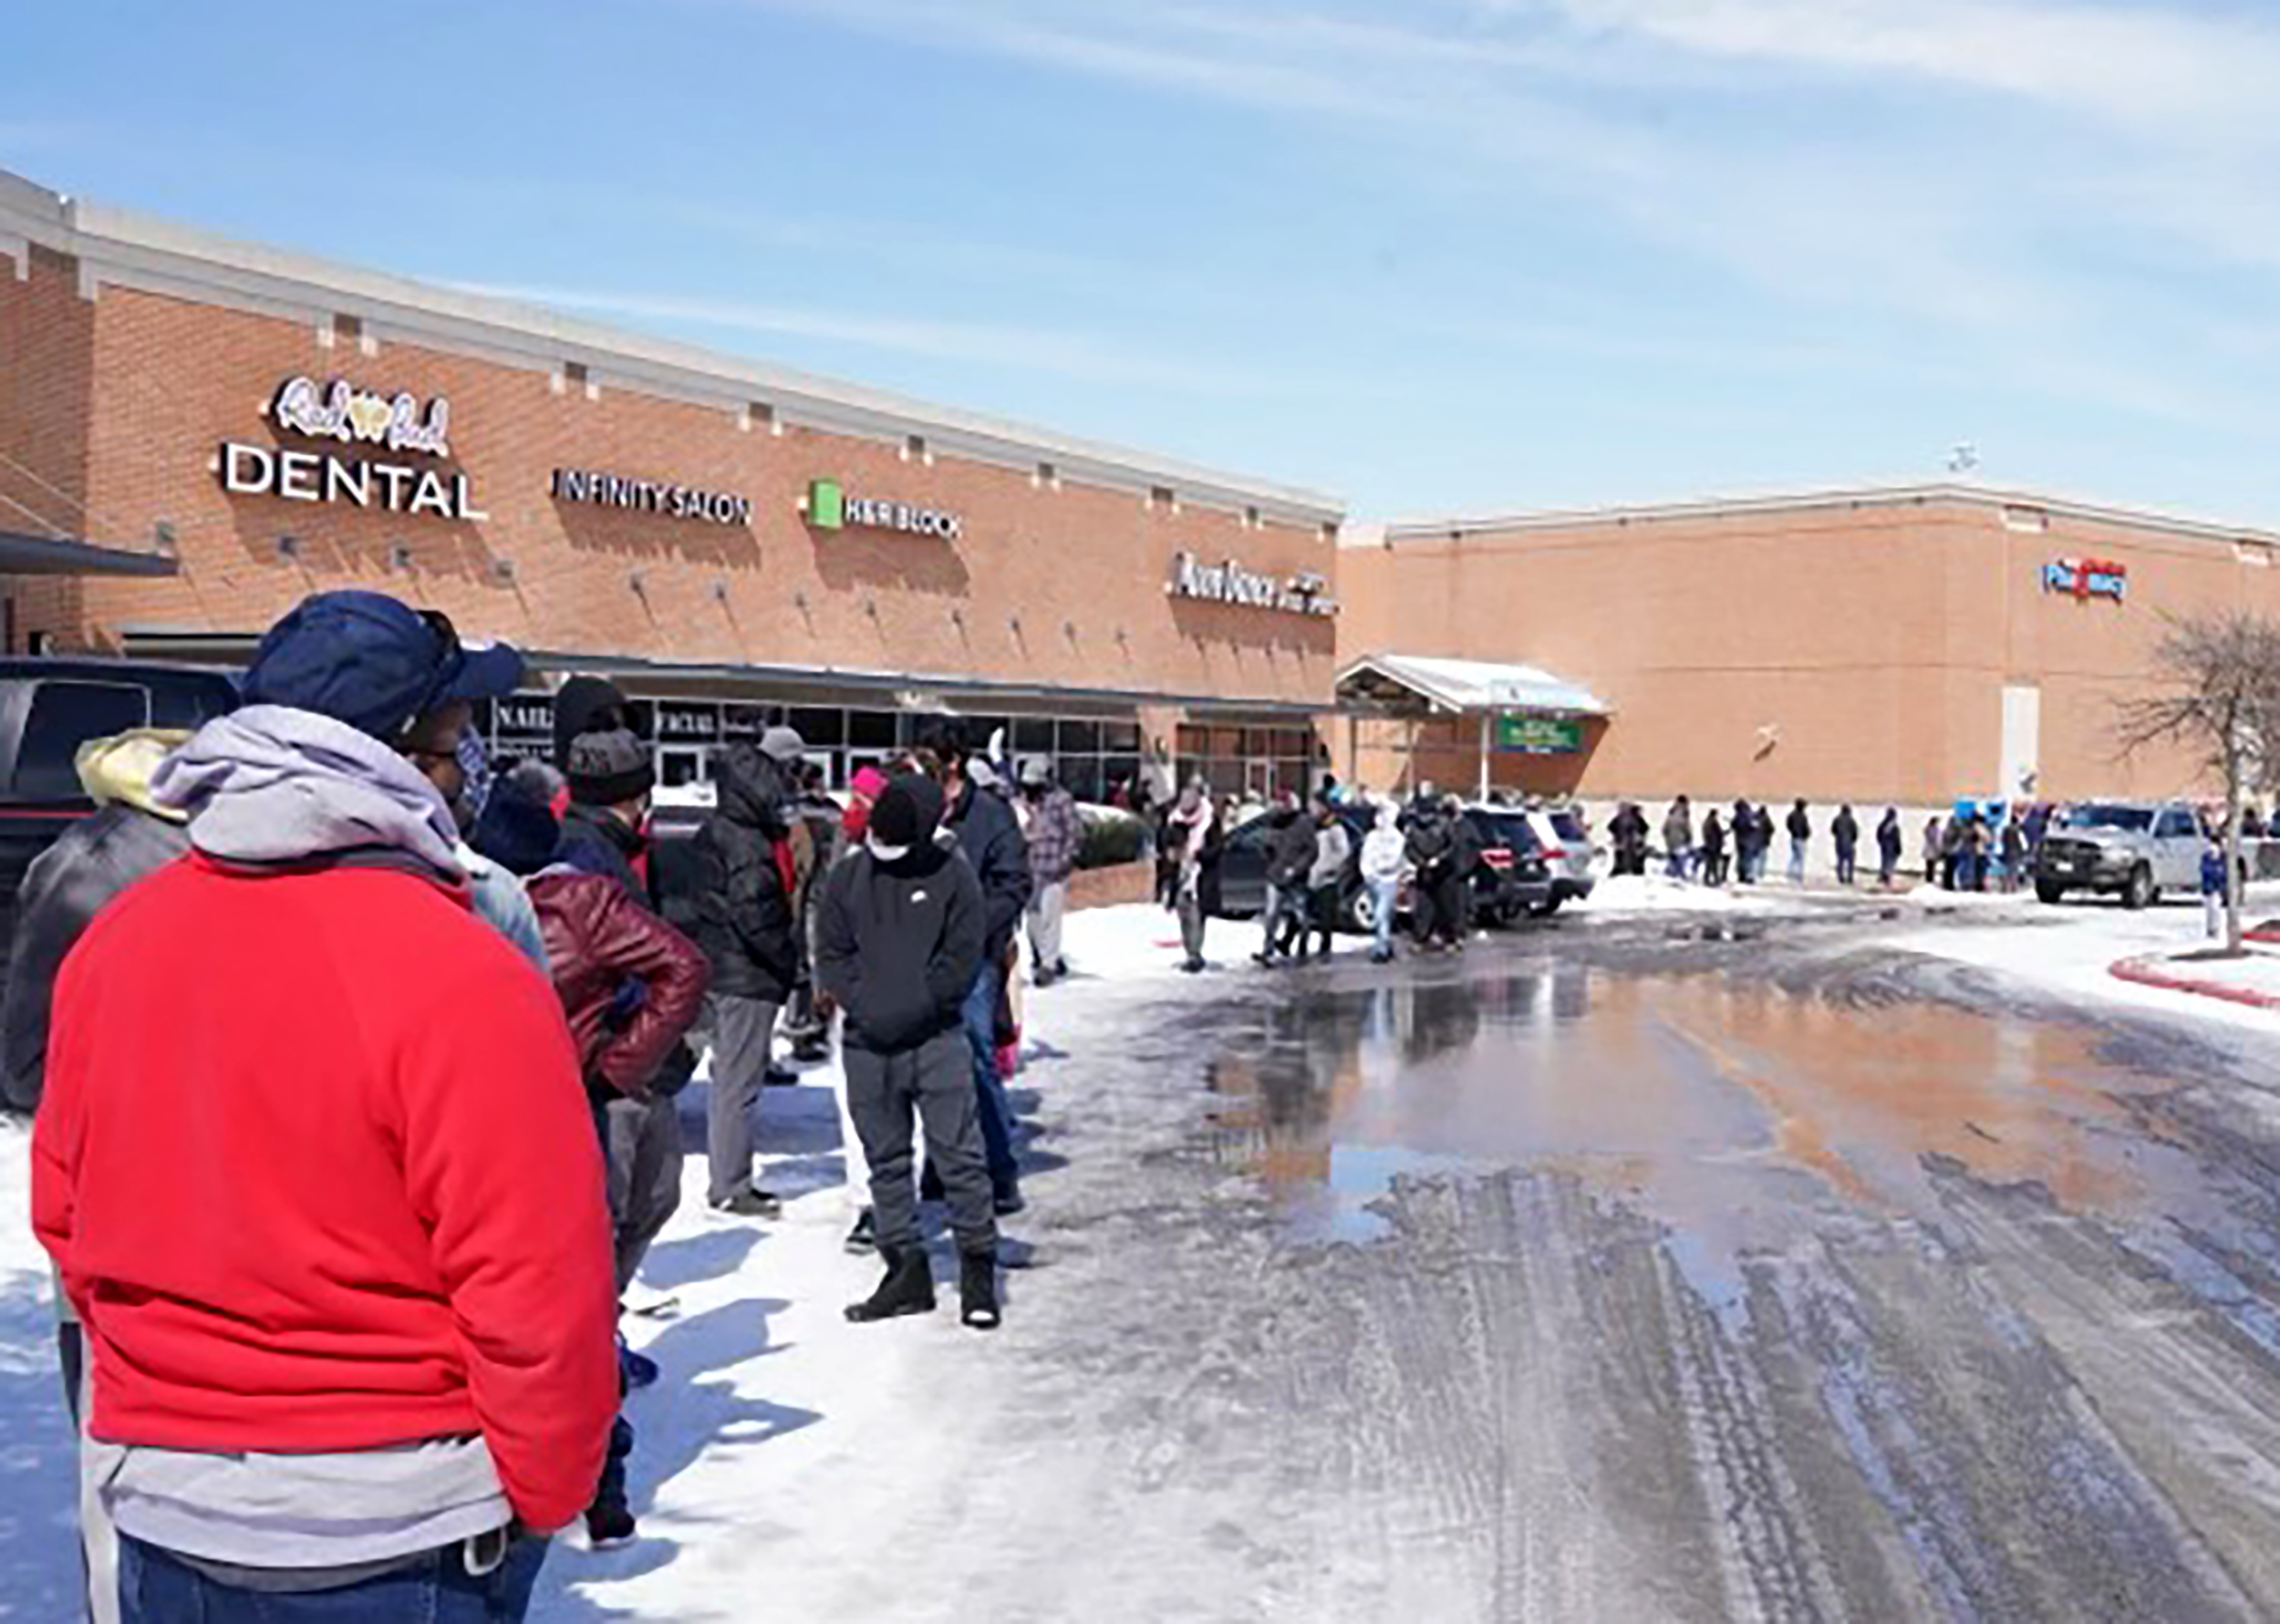 Long line of people outside in a shopping plaza.